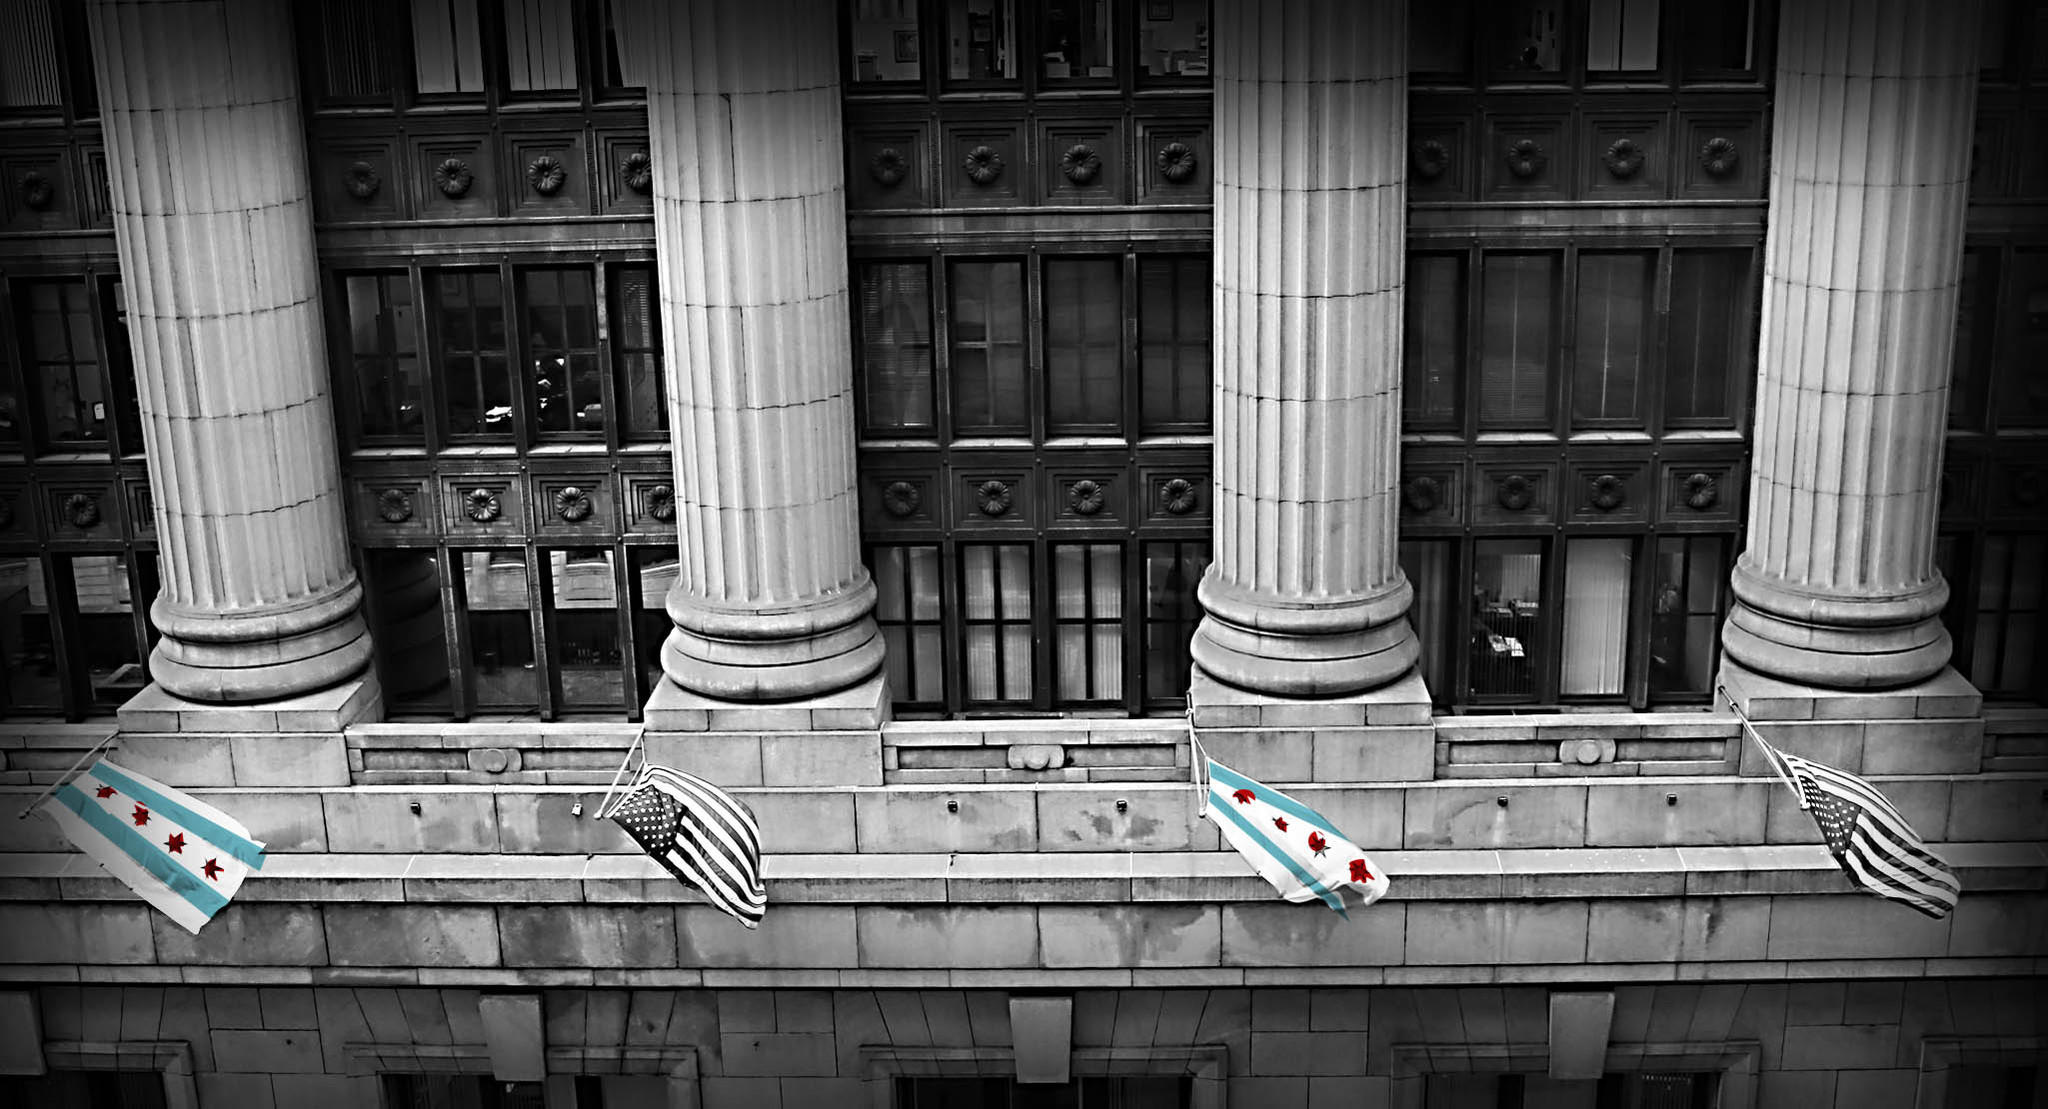 Views of Chicago's City Hall.